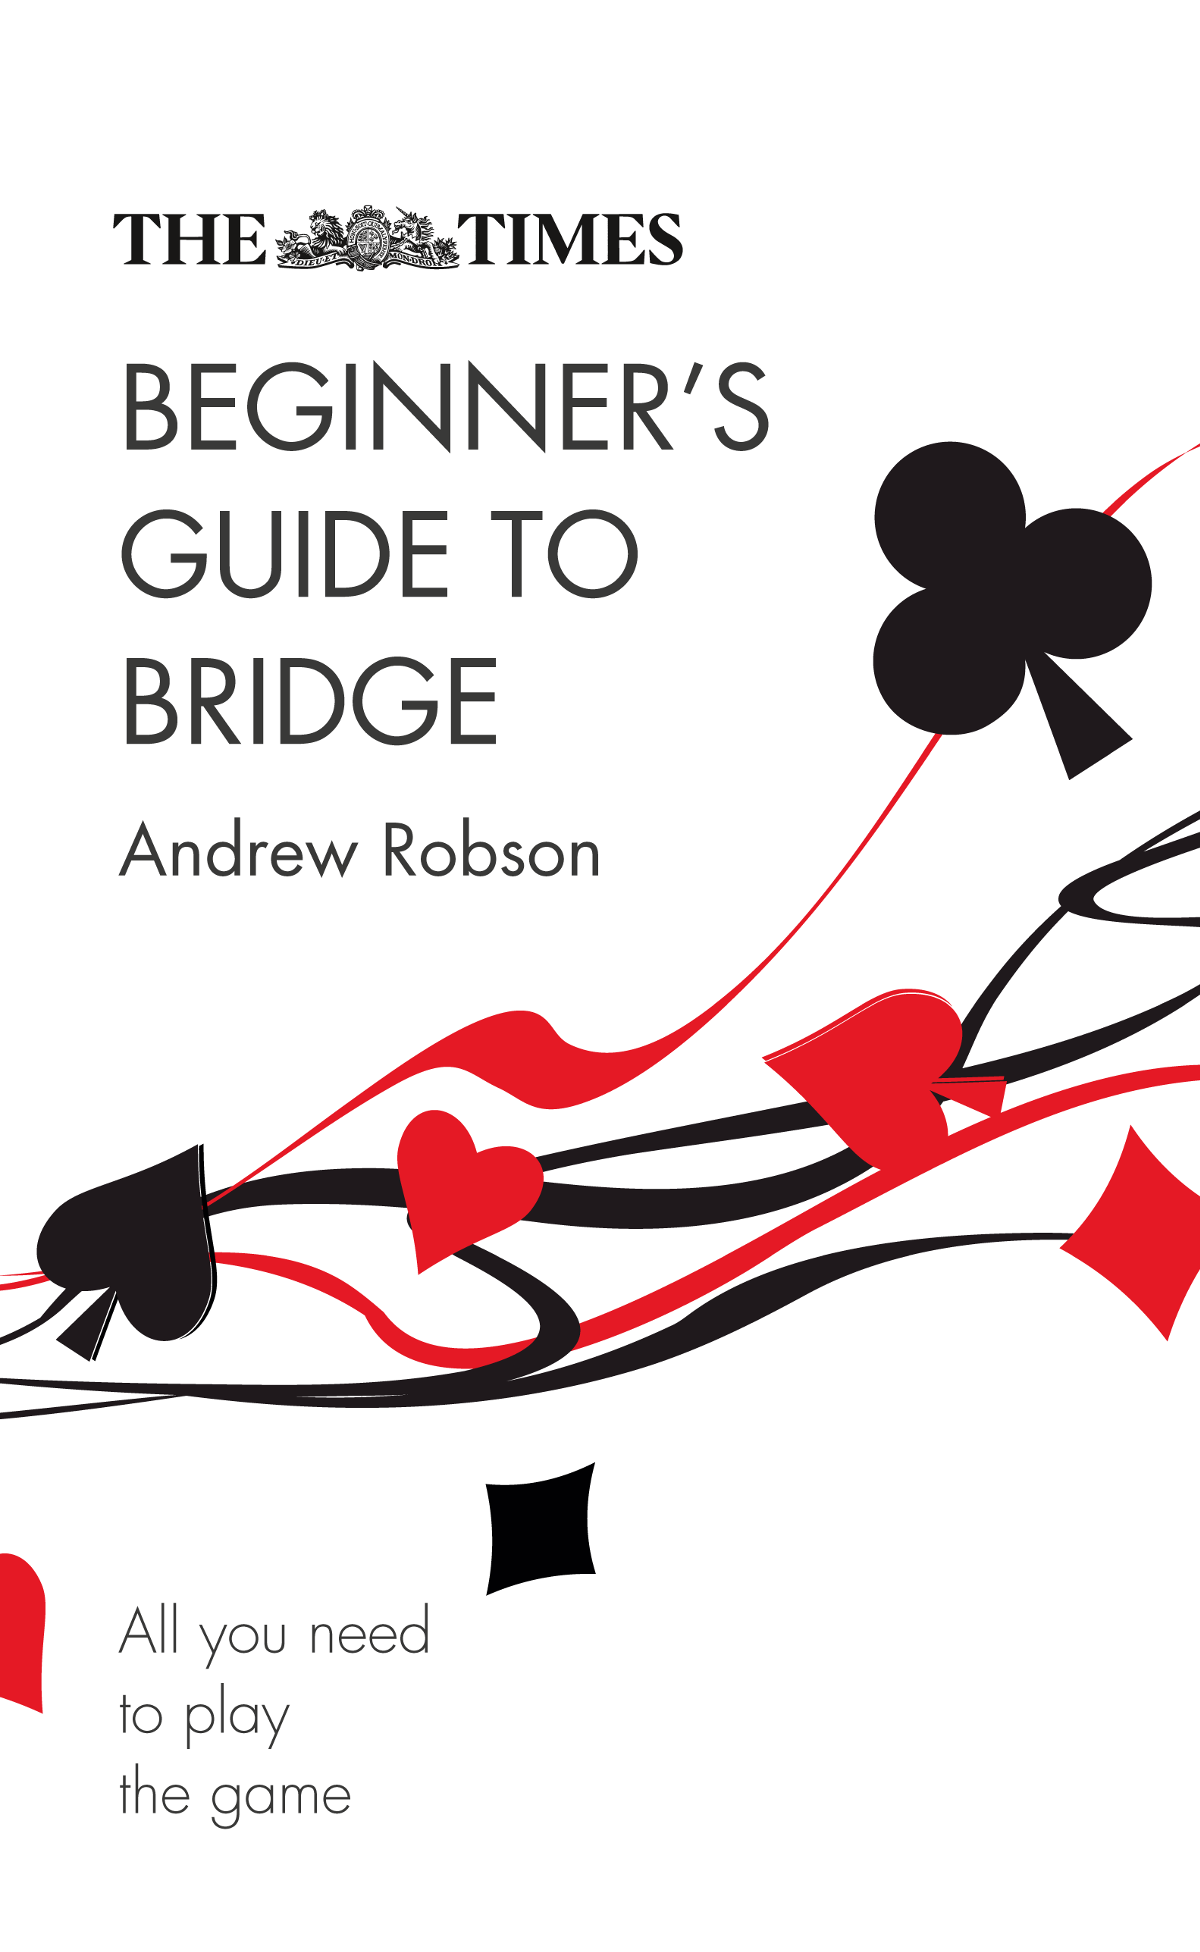 's Guide to Bridge: All you need to play the game